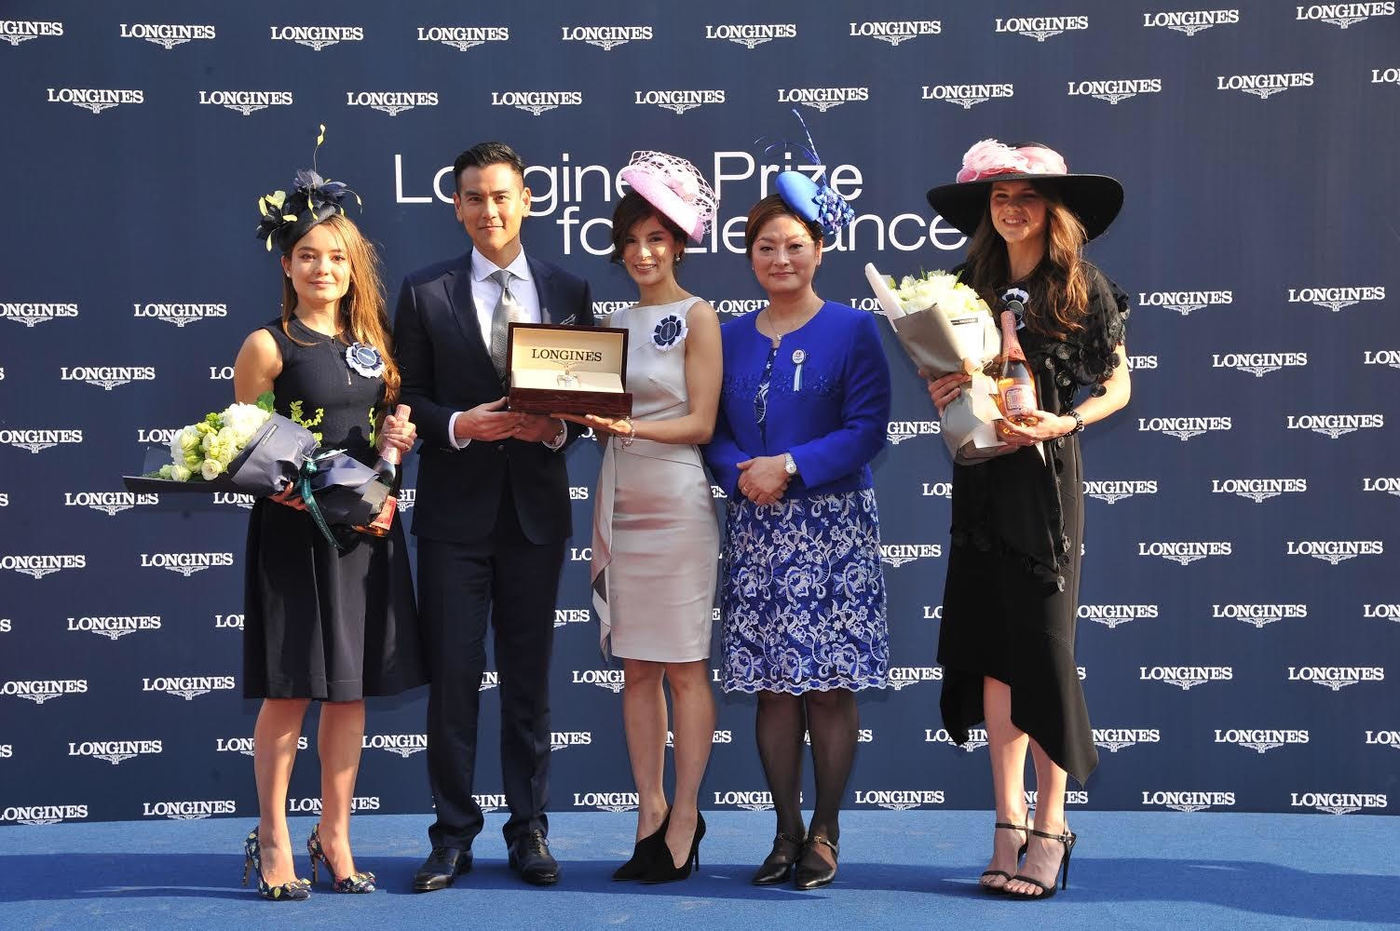 Longines Flat Racing Event: Longines welcomes its Ambassador of Elegance Eddie Peng at the 2017 Longines Hong Kong International Races 7